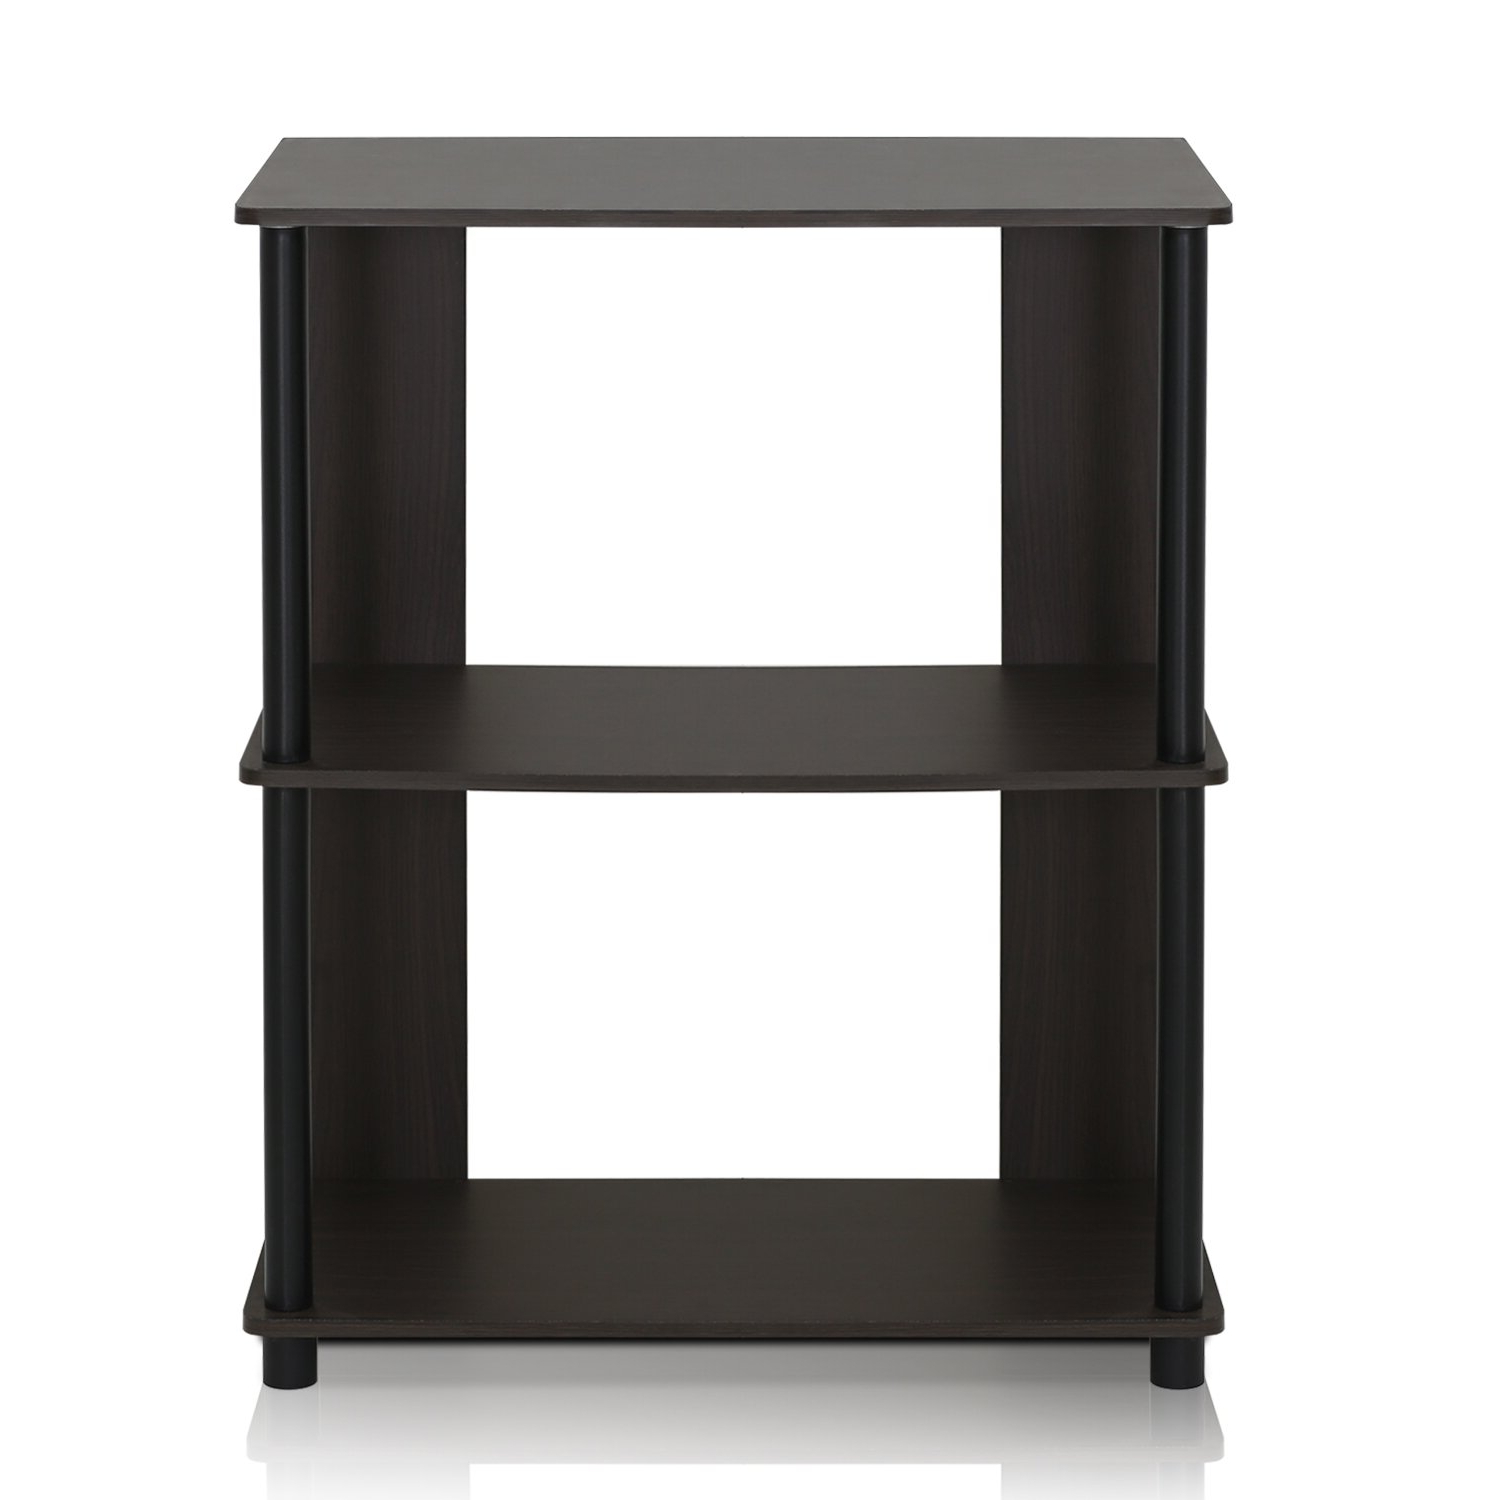 """Furinno Furinno Jaya Simple Design 50"""" Tv Stand With Bins With Regard To Furinno Jaya Large Entertainment Center Tv Stands (View 15 of 20)"""